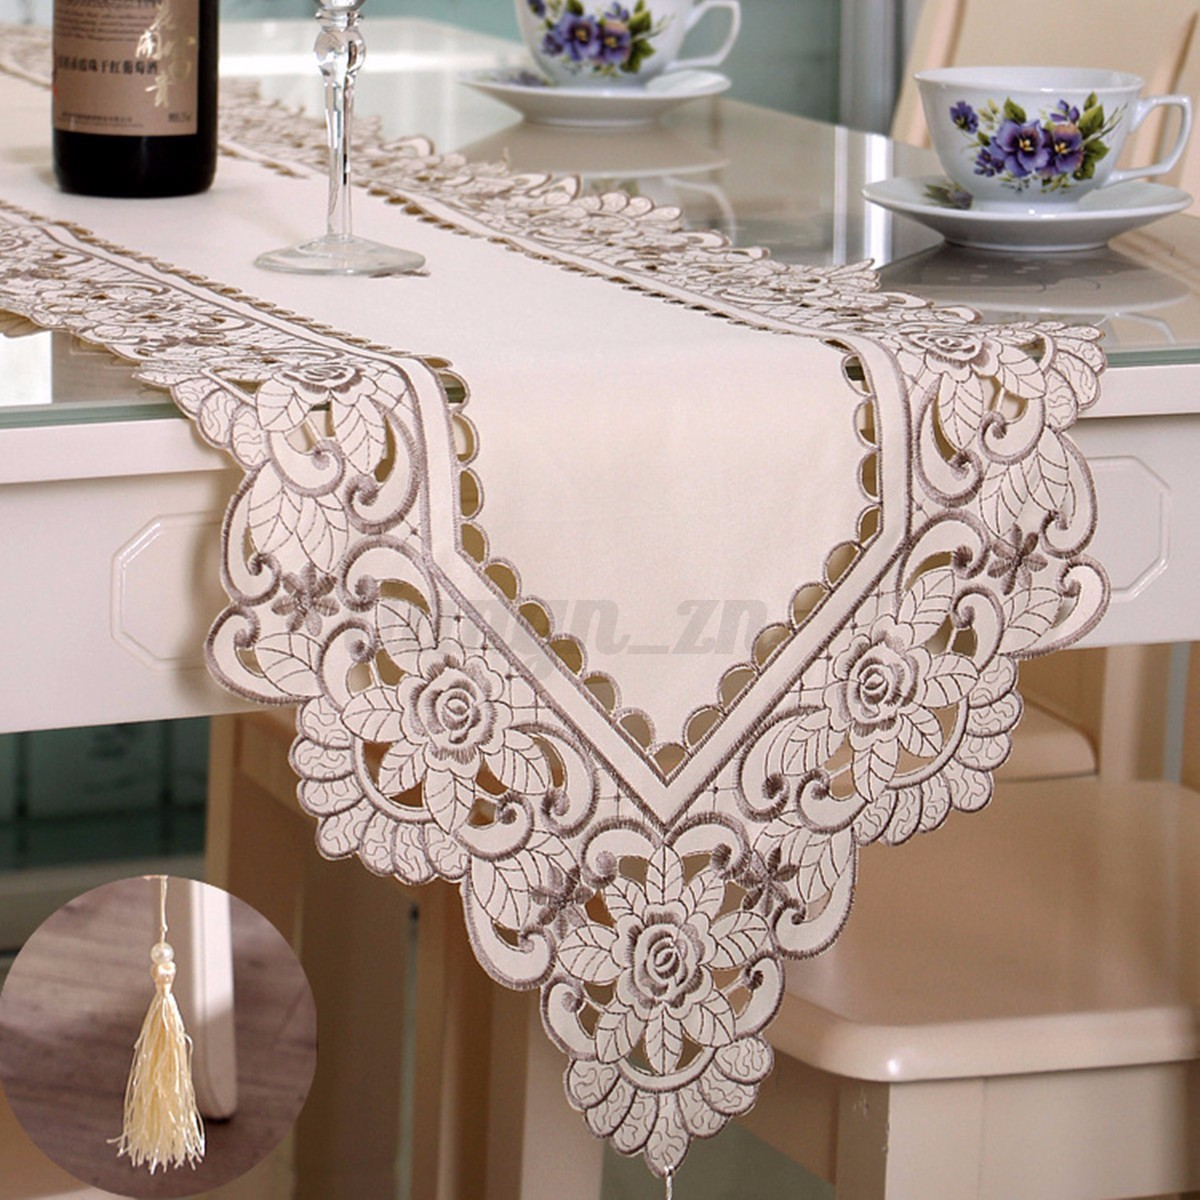 chemin de table d coration nappe napperon fleurs broderie f te mariage 7 styles ebay. Black Bedroom Furniture Sets. Home Design Ideas